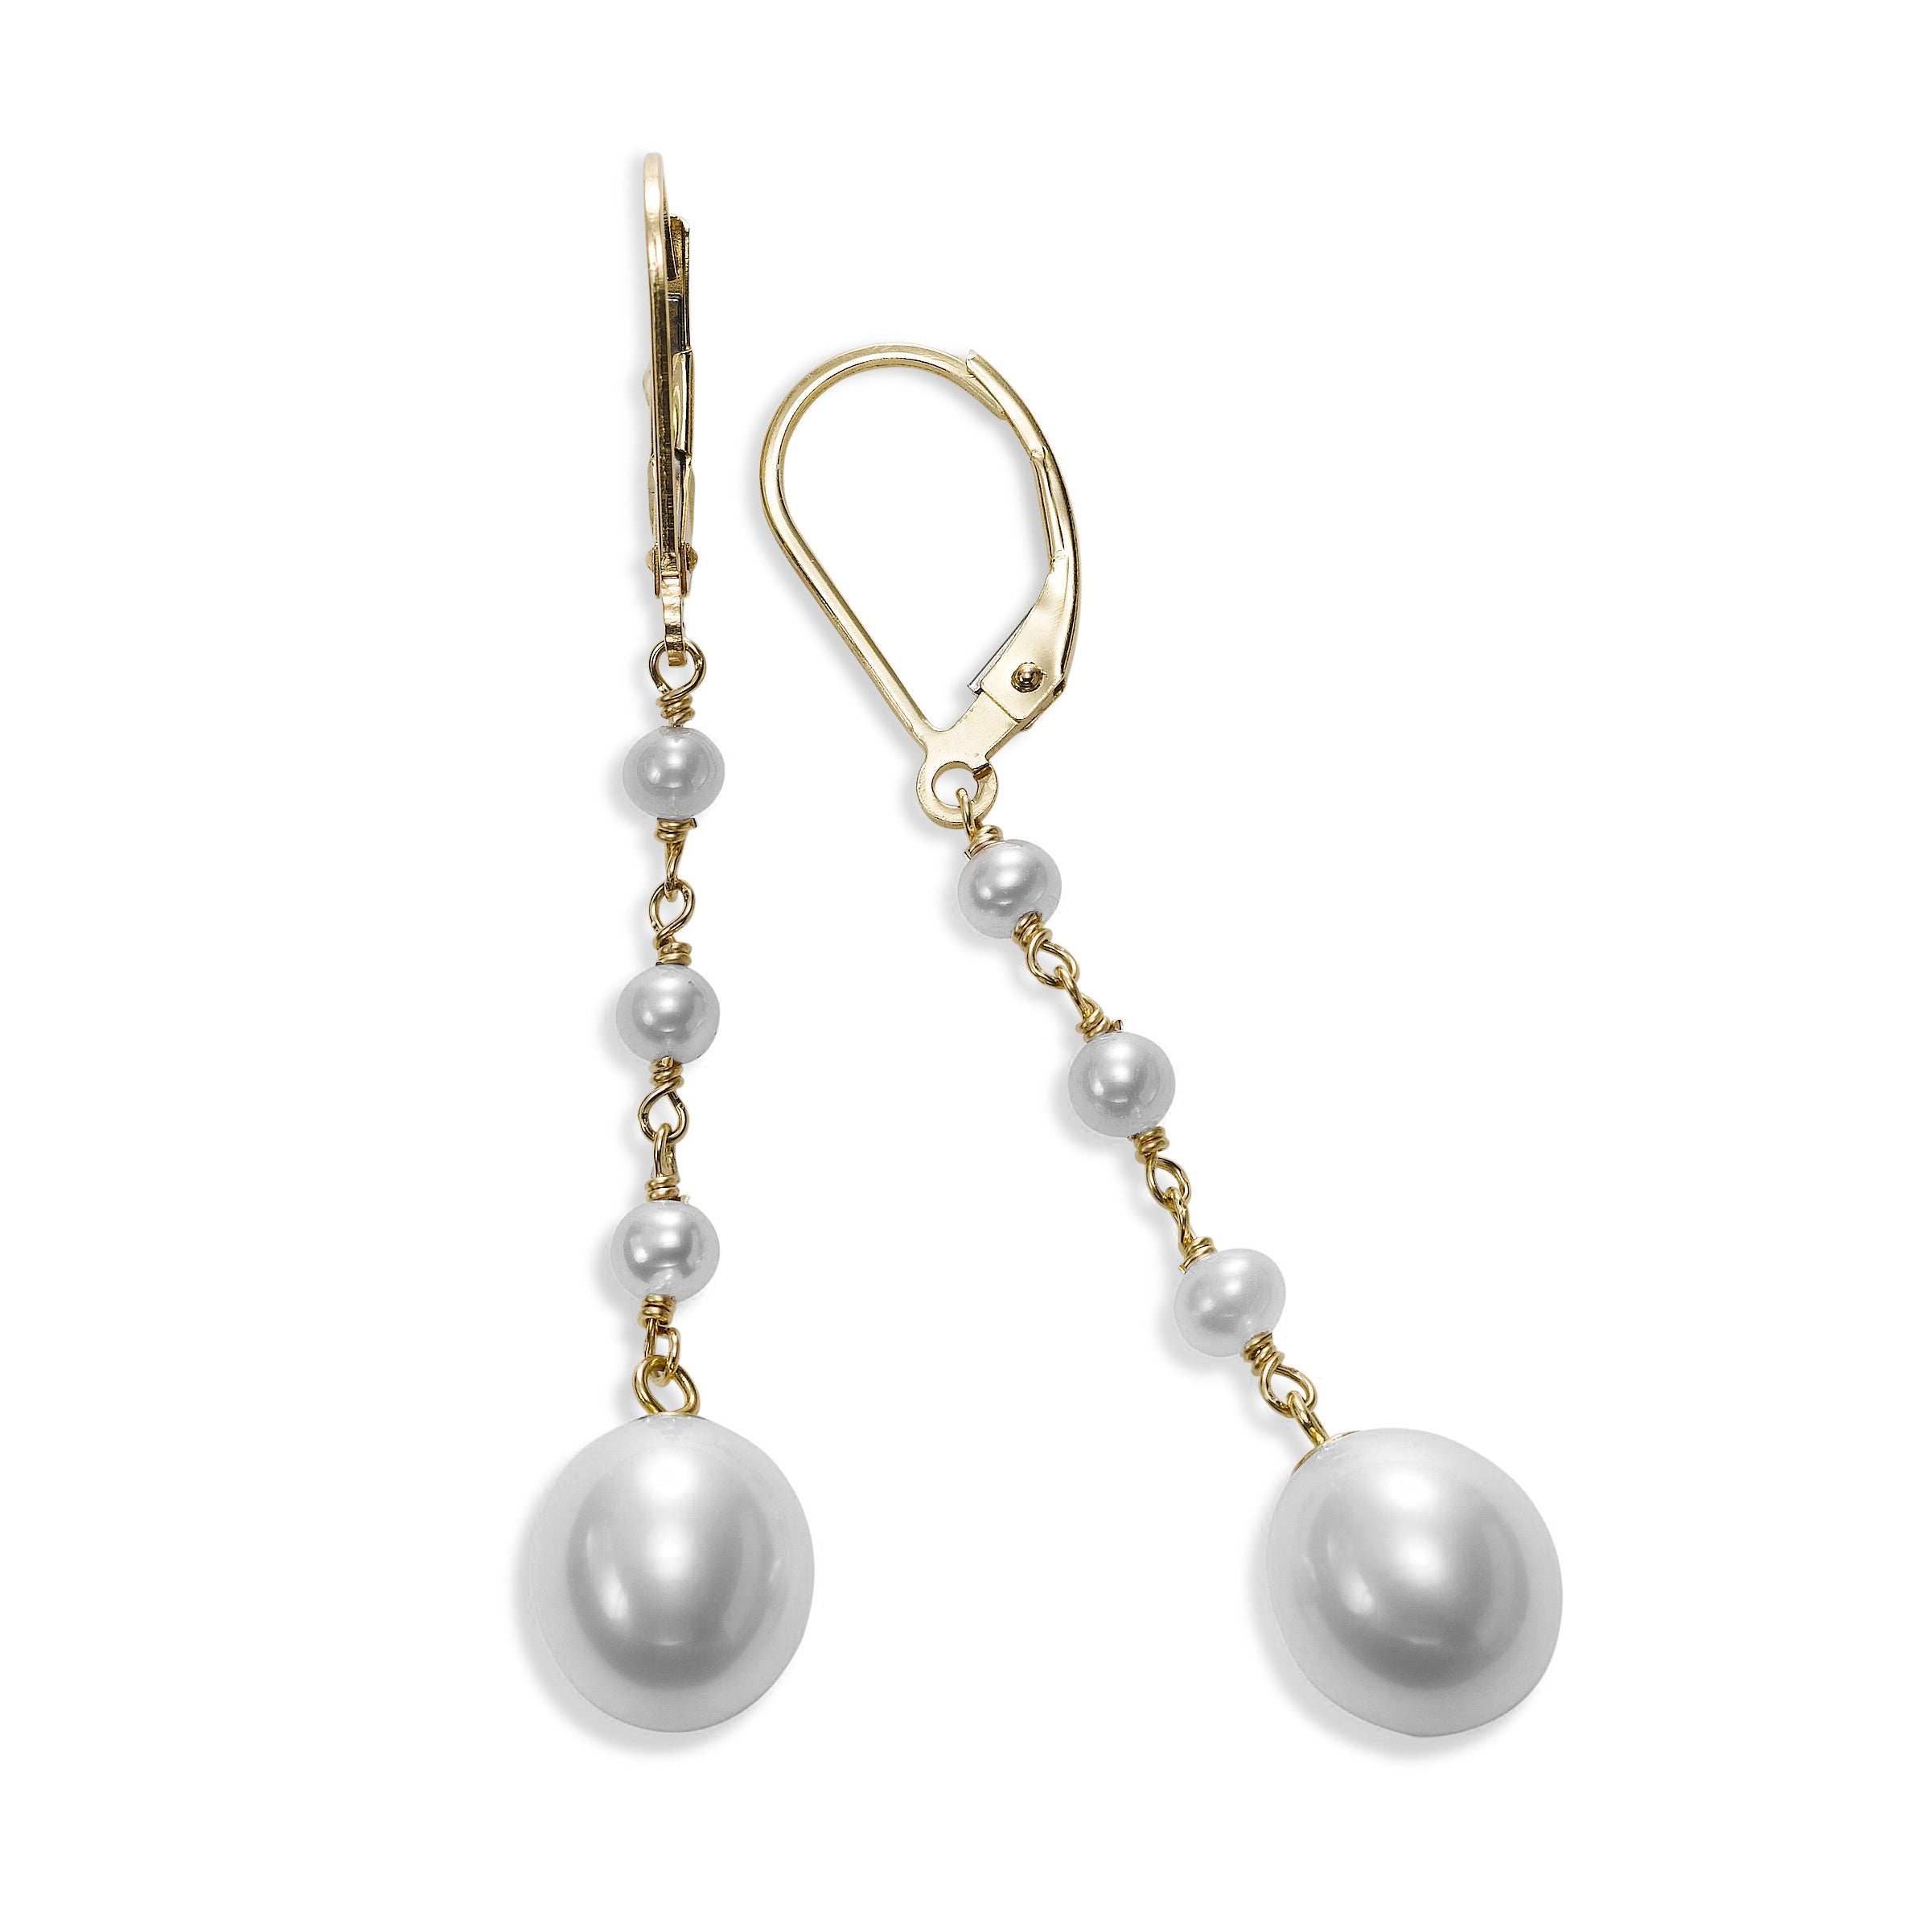 White Cultured Pearl Dangle Earrings, 14K Yellow Gold